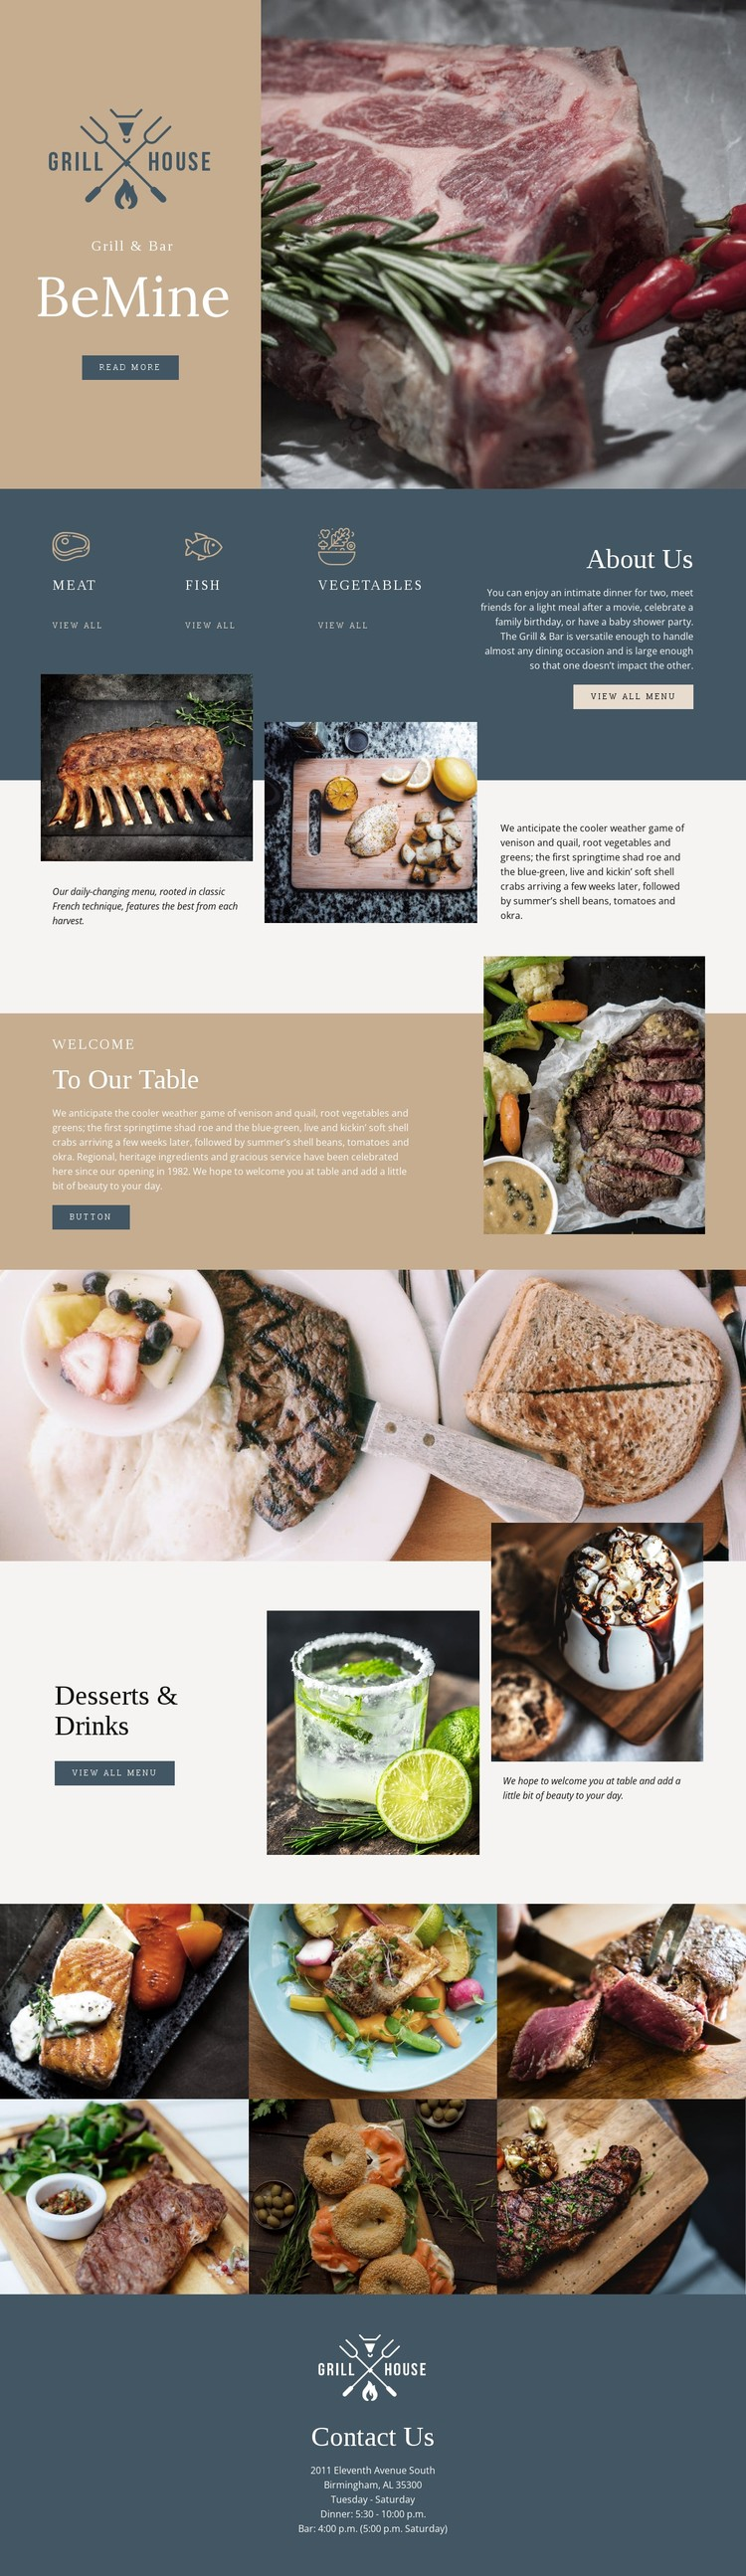 Finest grill house restaurant CSS Template